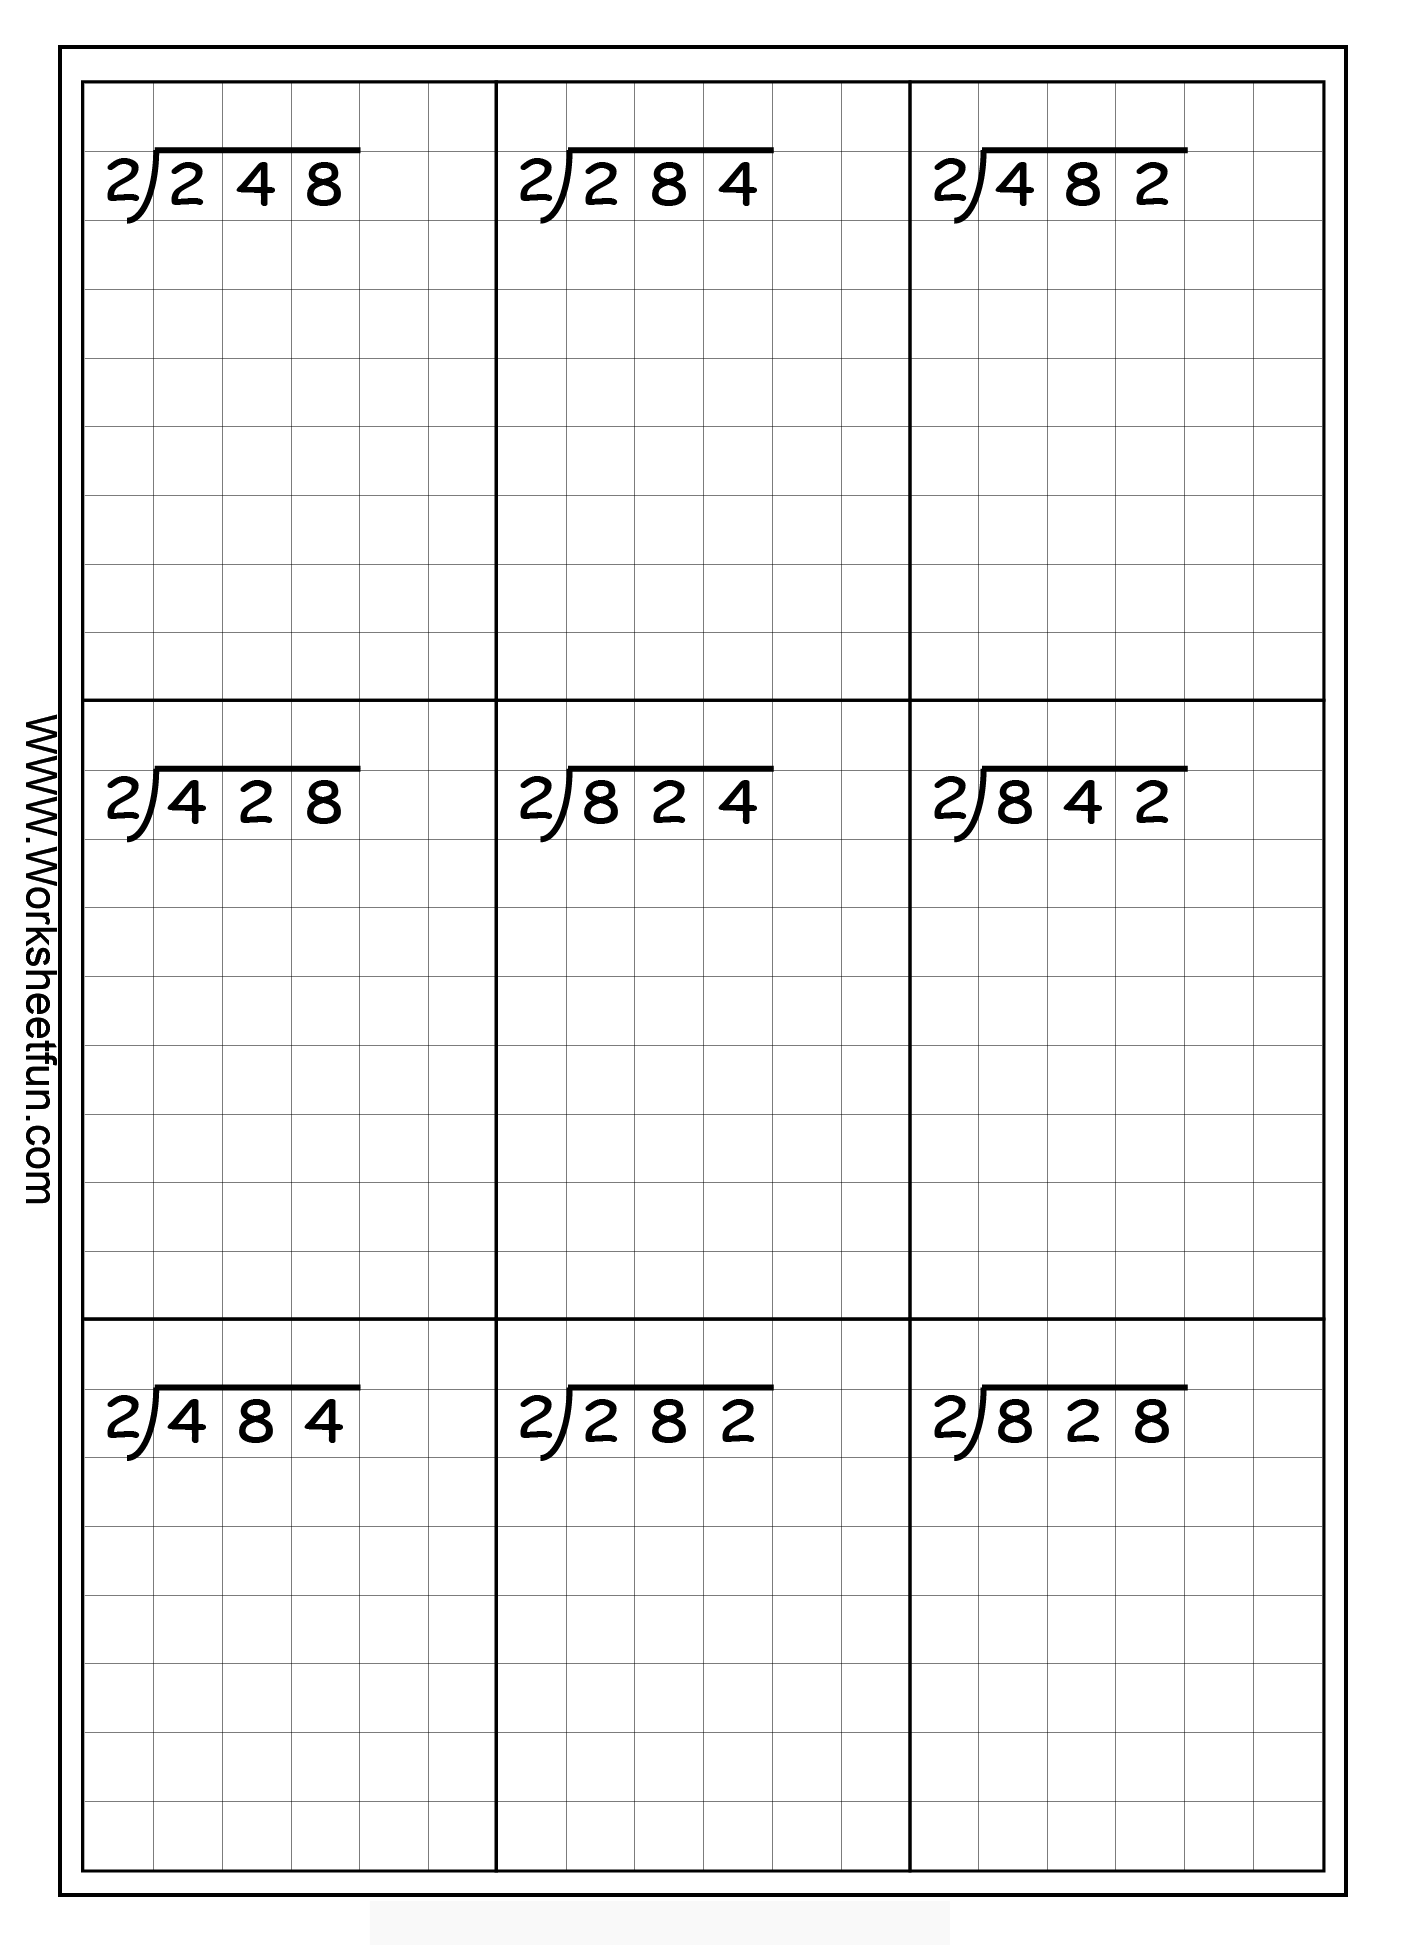 worksheet Division No Remainders long division 3 digits by 1 digit no remainder 20 worksheets worksheets